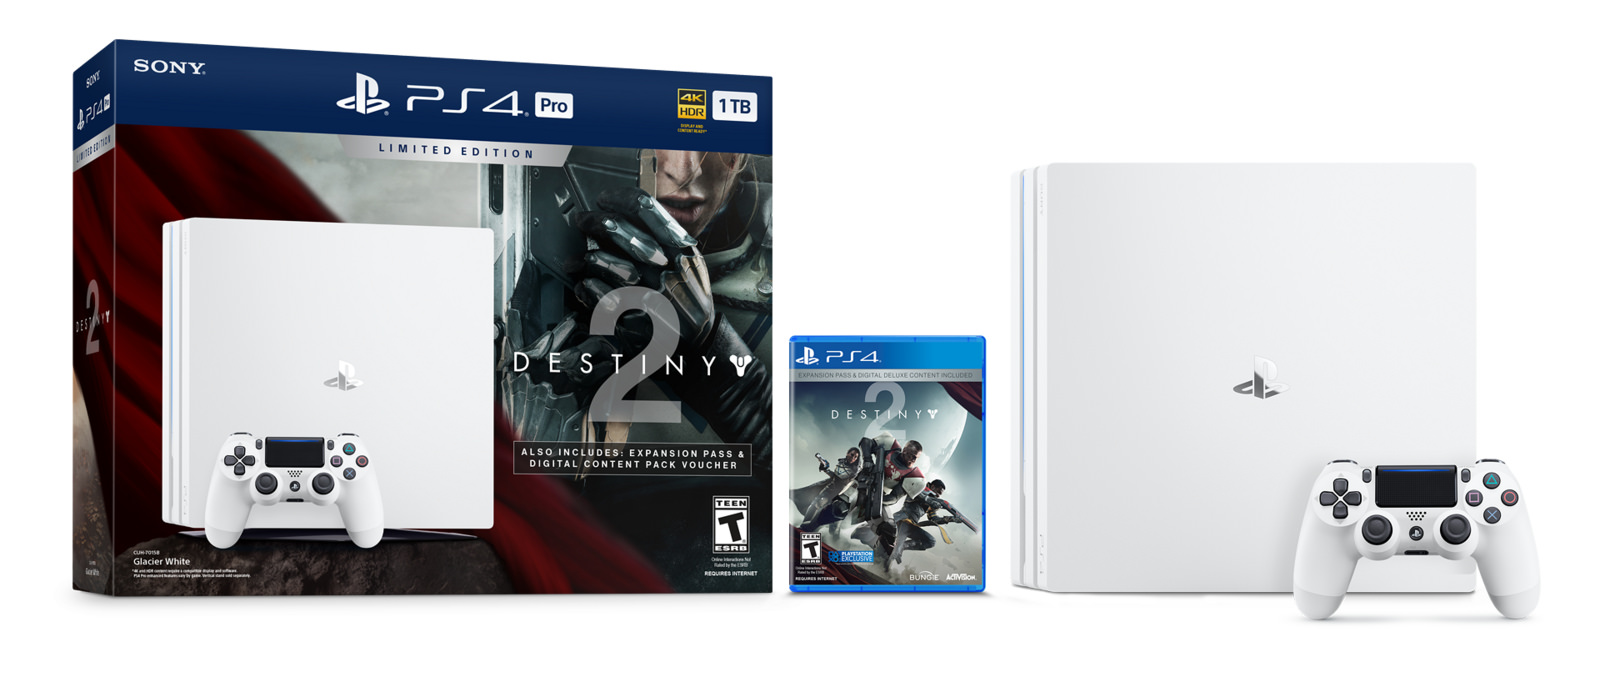 There's a white PS4 Pro, but it's exclusive to the Destiny 2 bundle screenshot